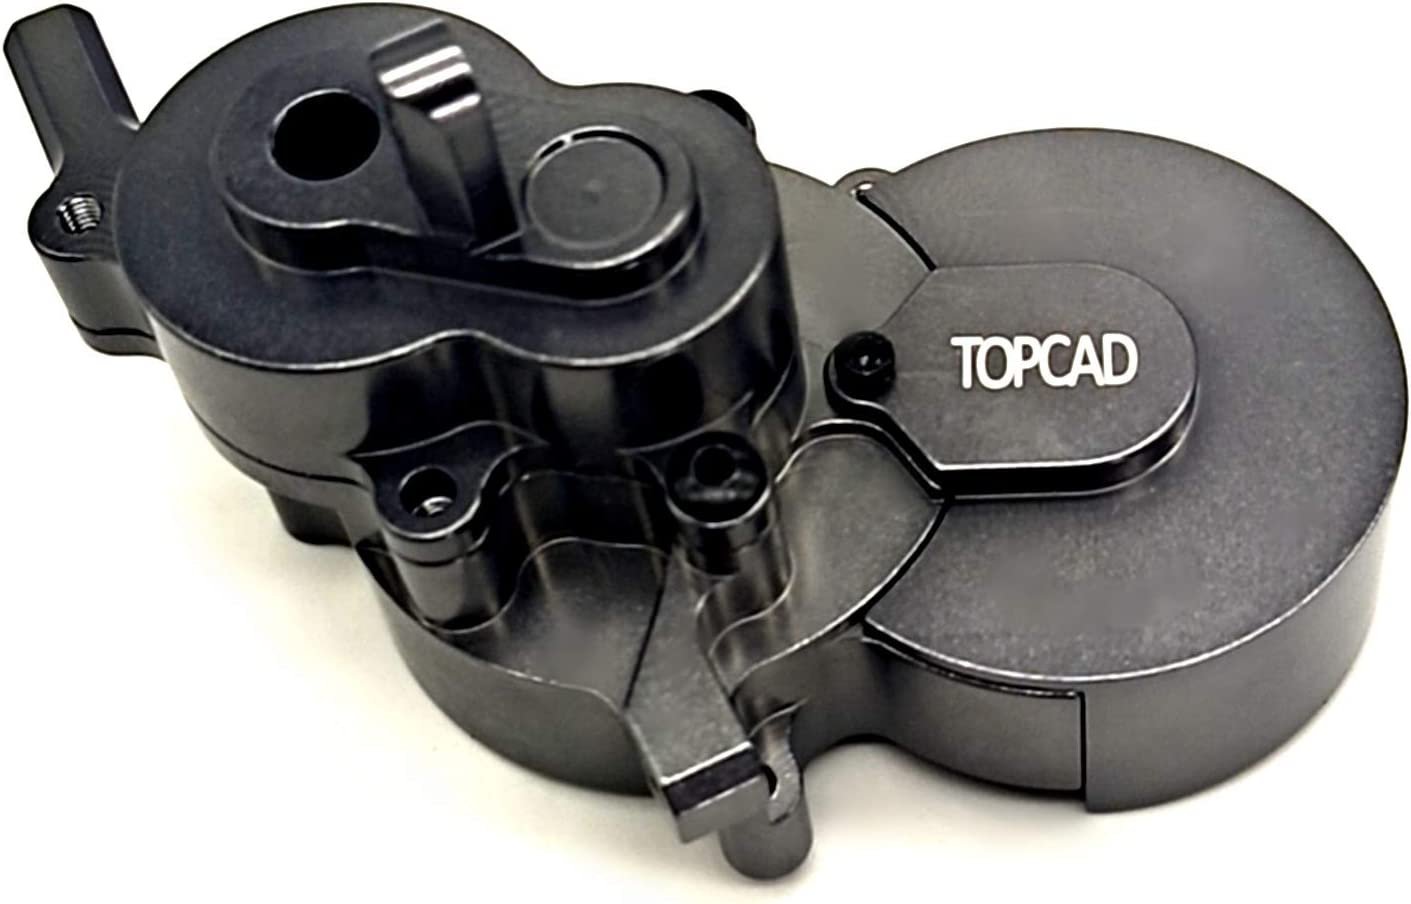 Titanium TOPCAD Aluminum Gearbox housing kit and Gear Cover for Redcat Gen8